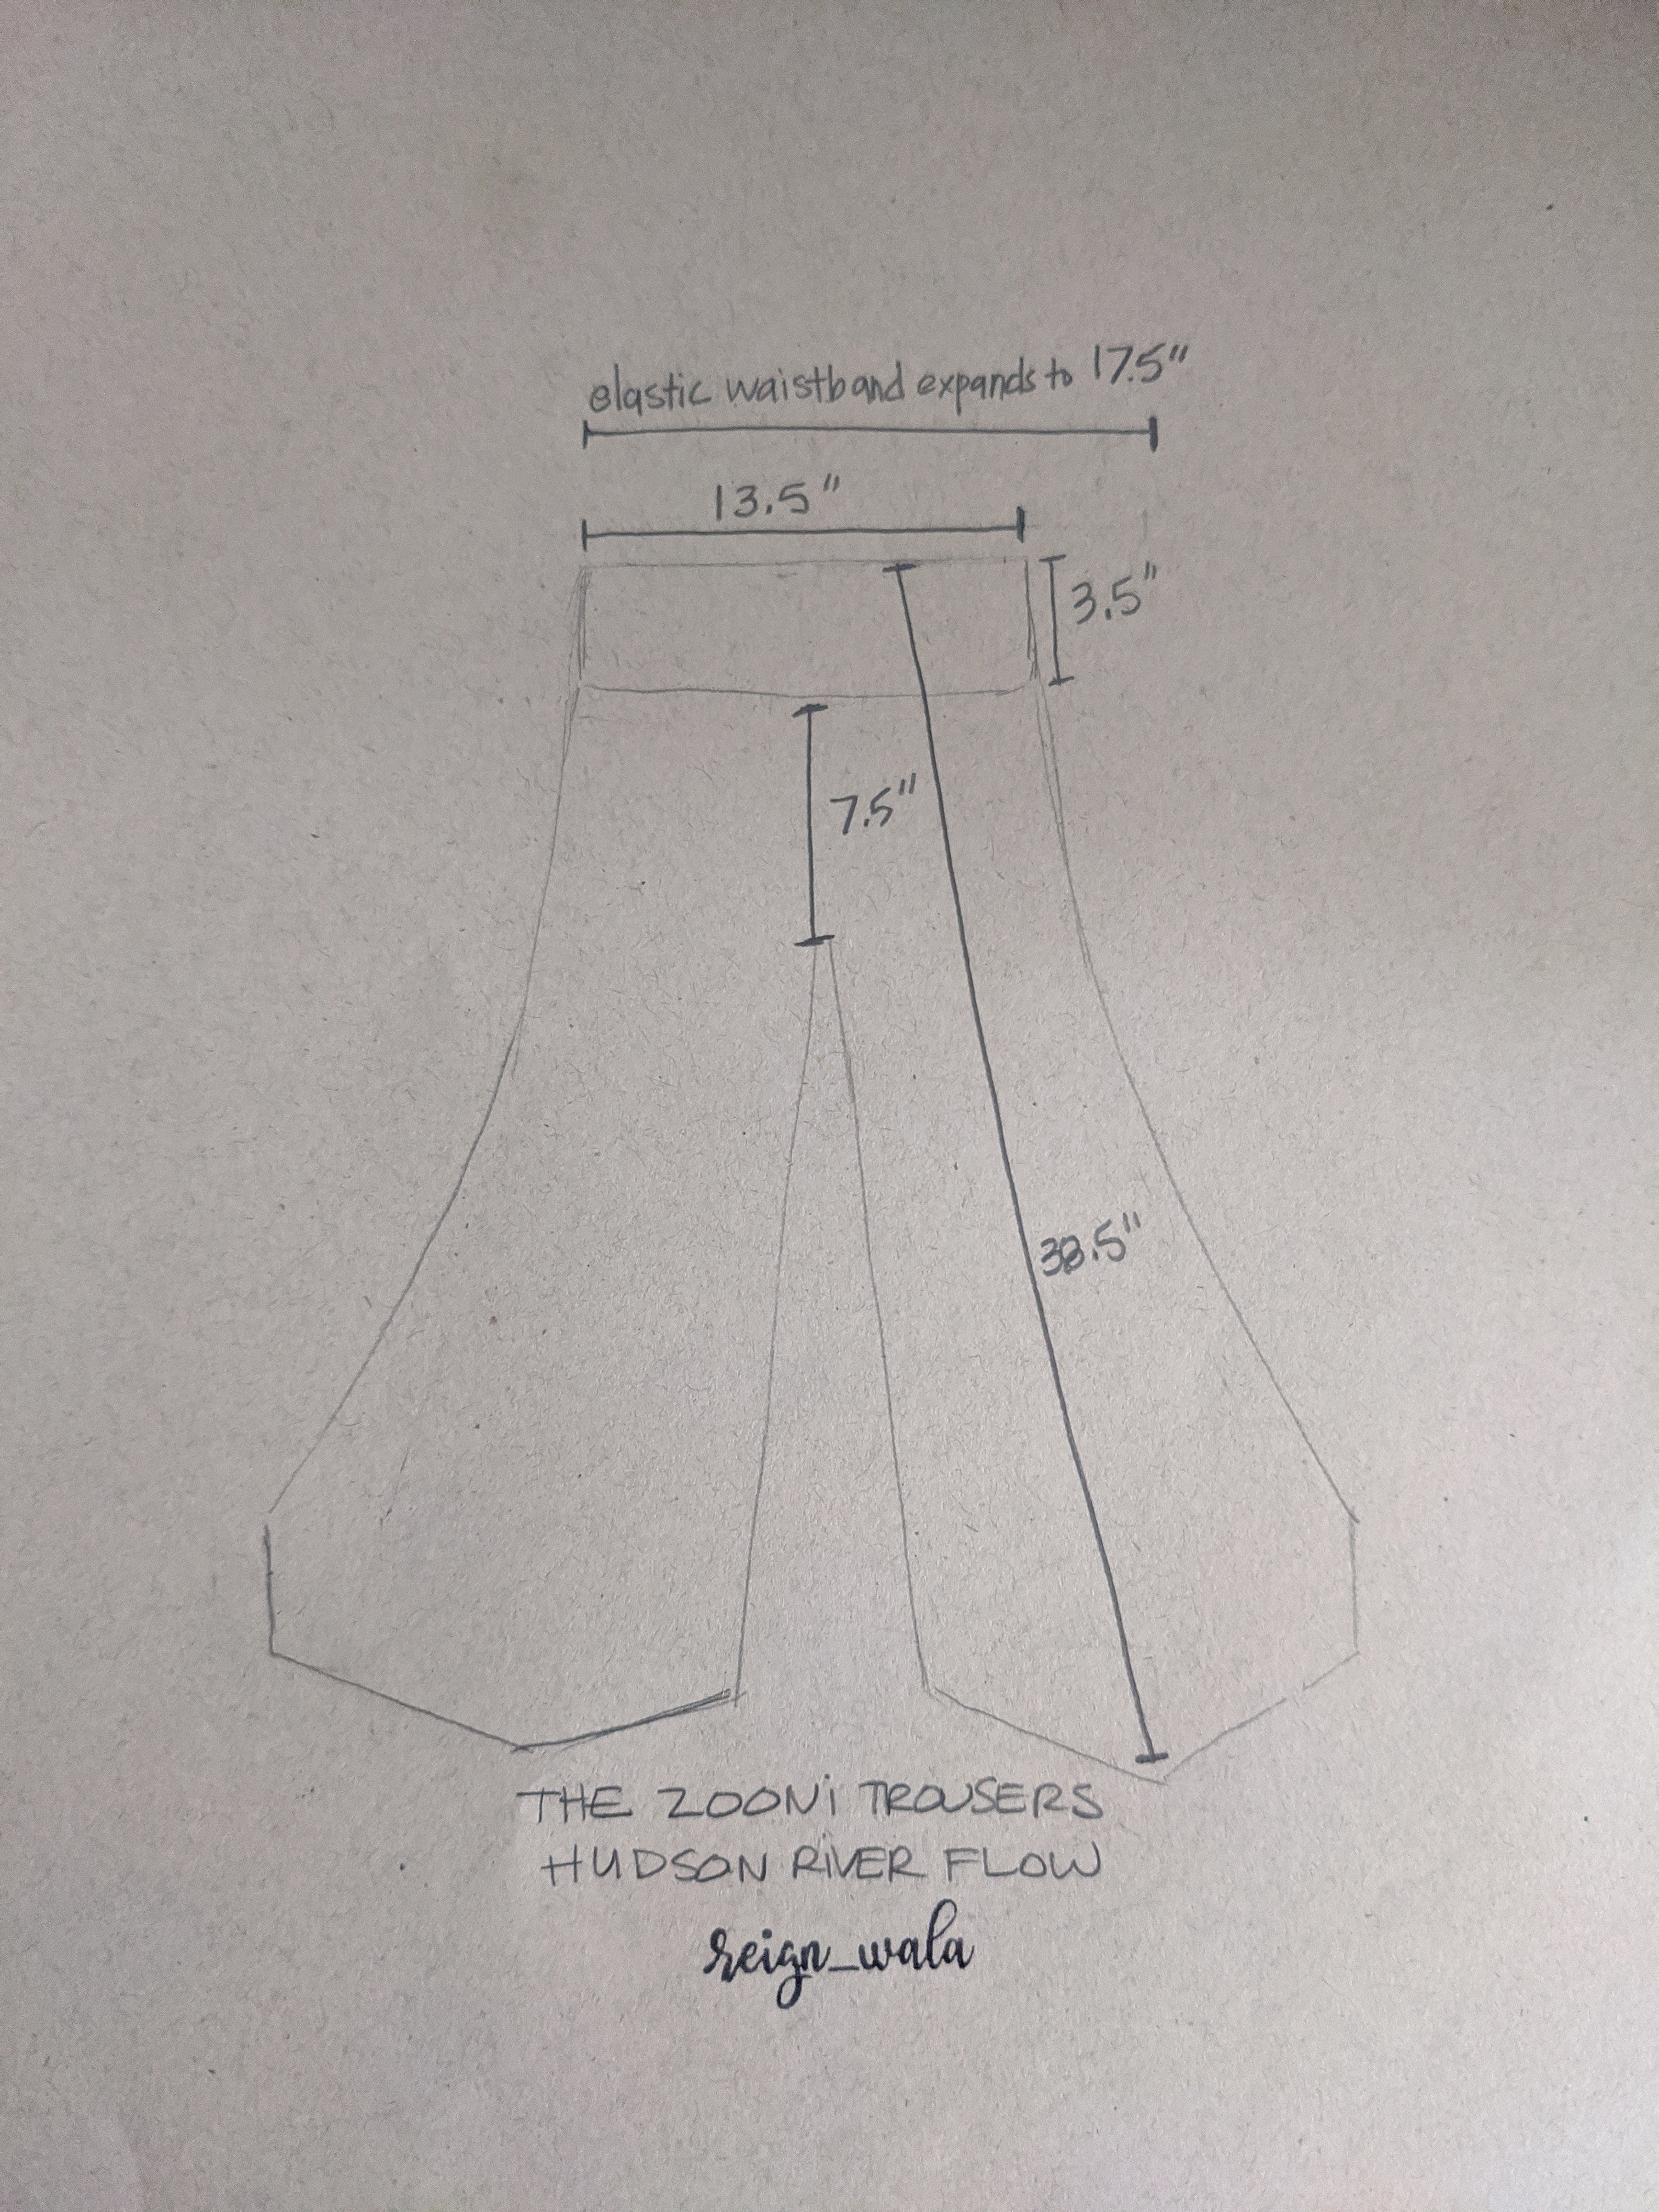 The Zooni Trousers #16B — Hudson River Flow